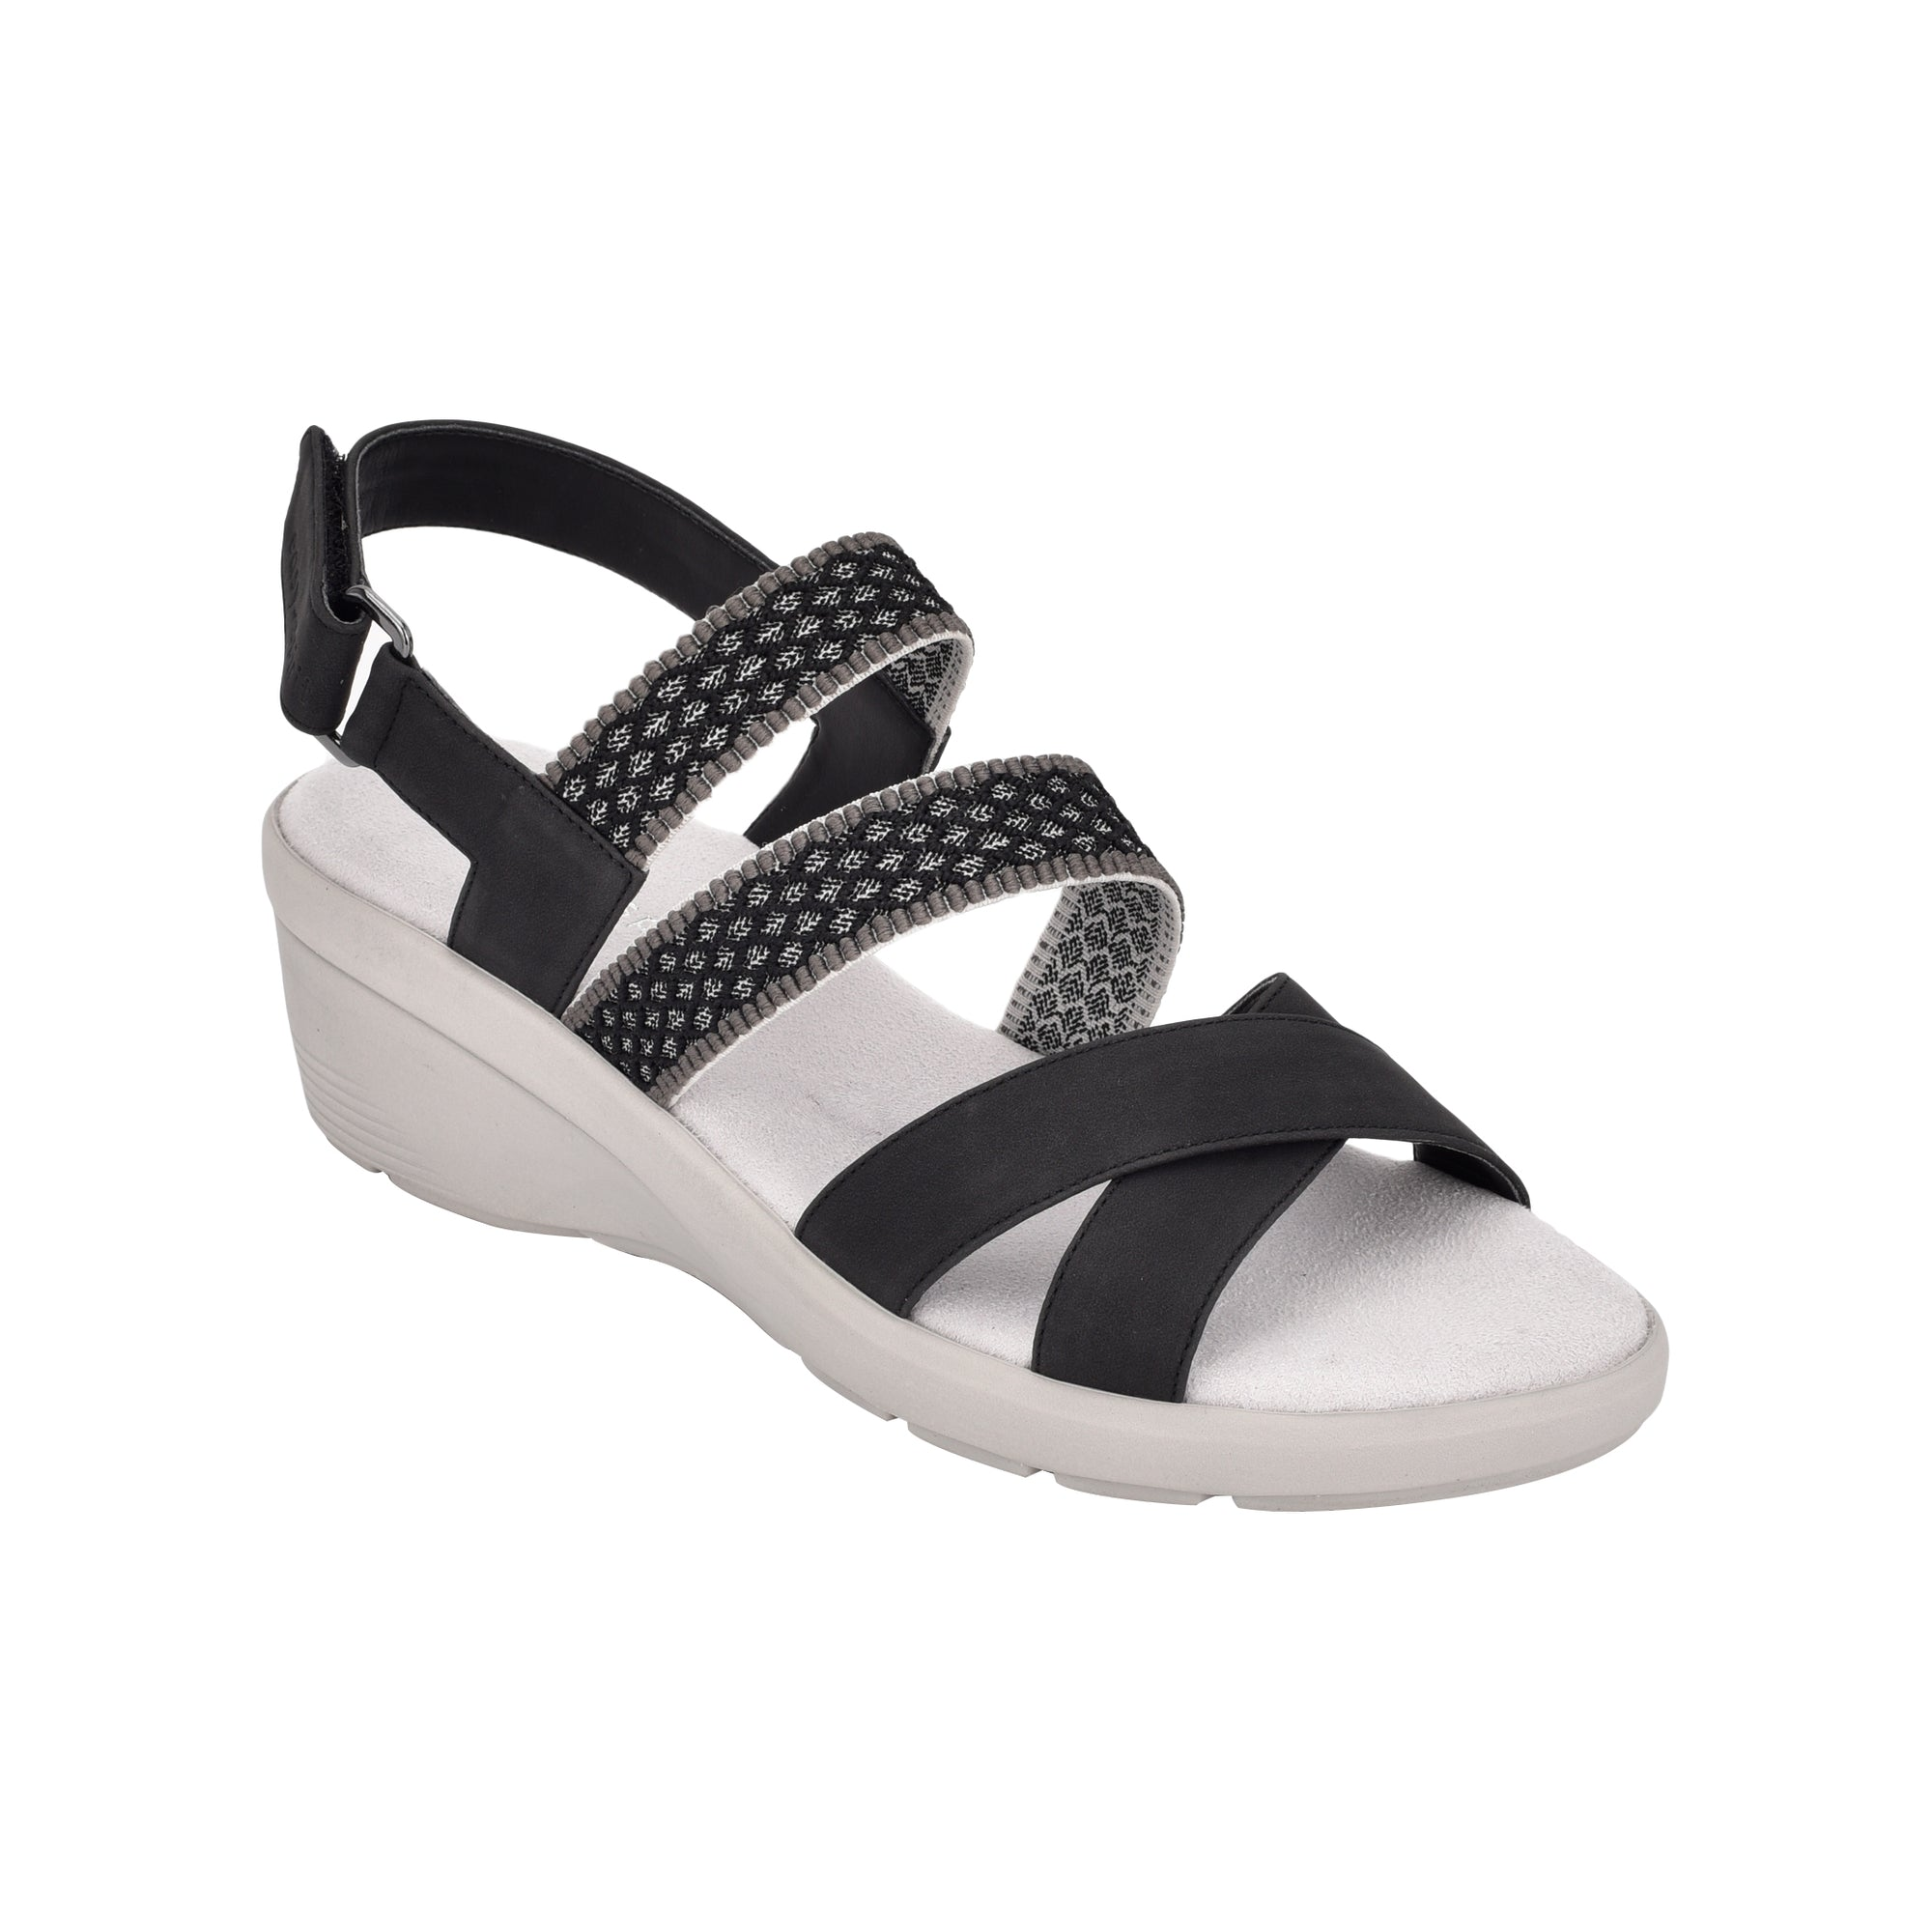 Priya Wedge Sandals